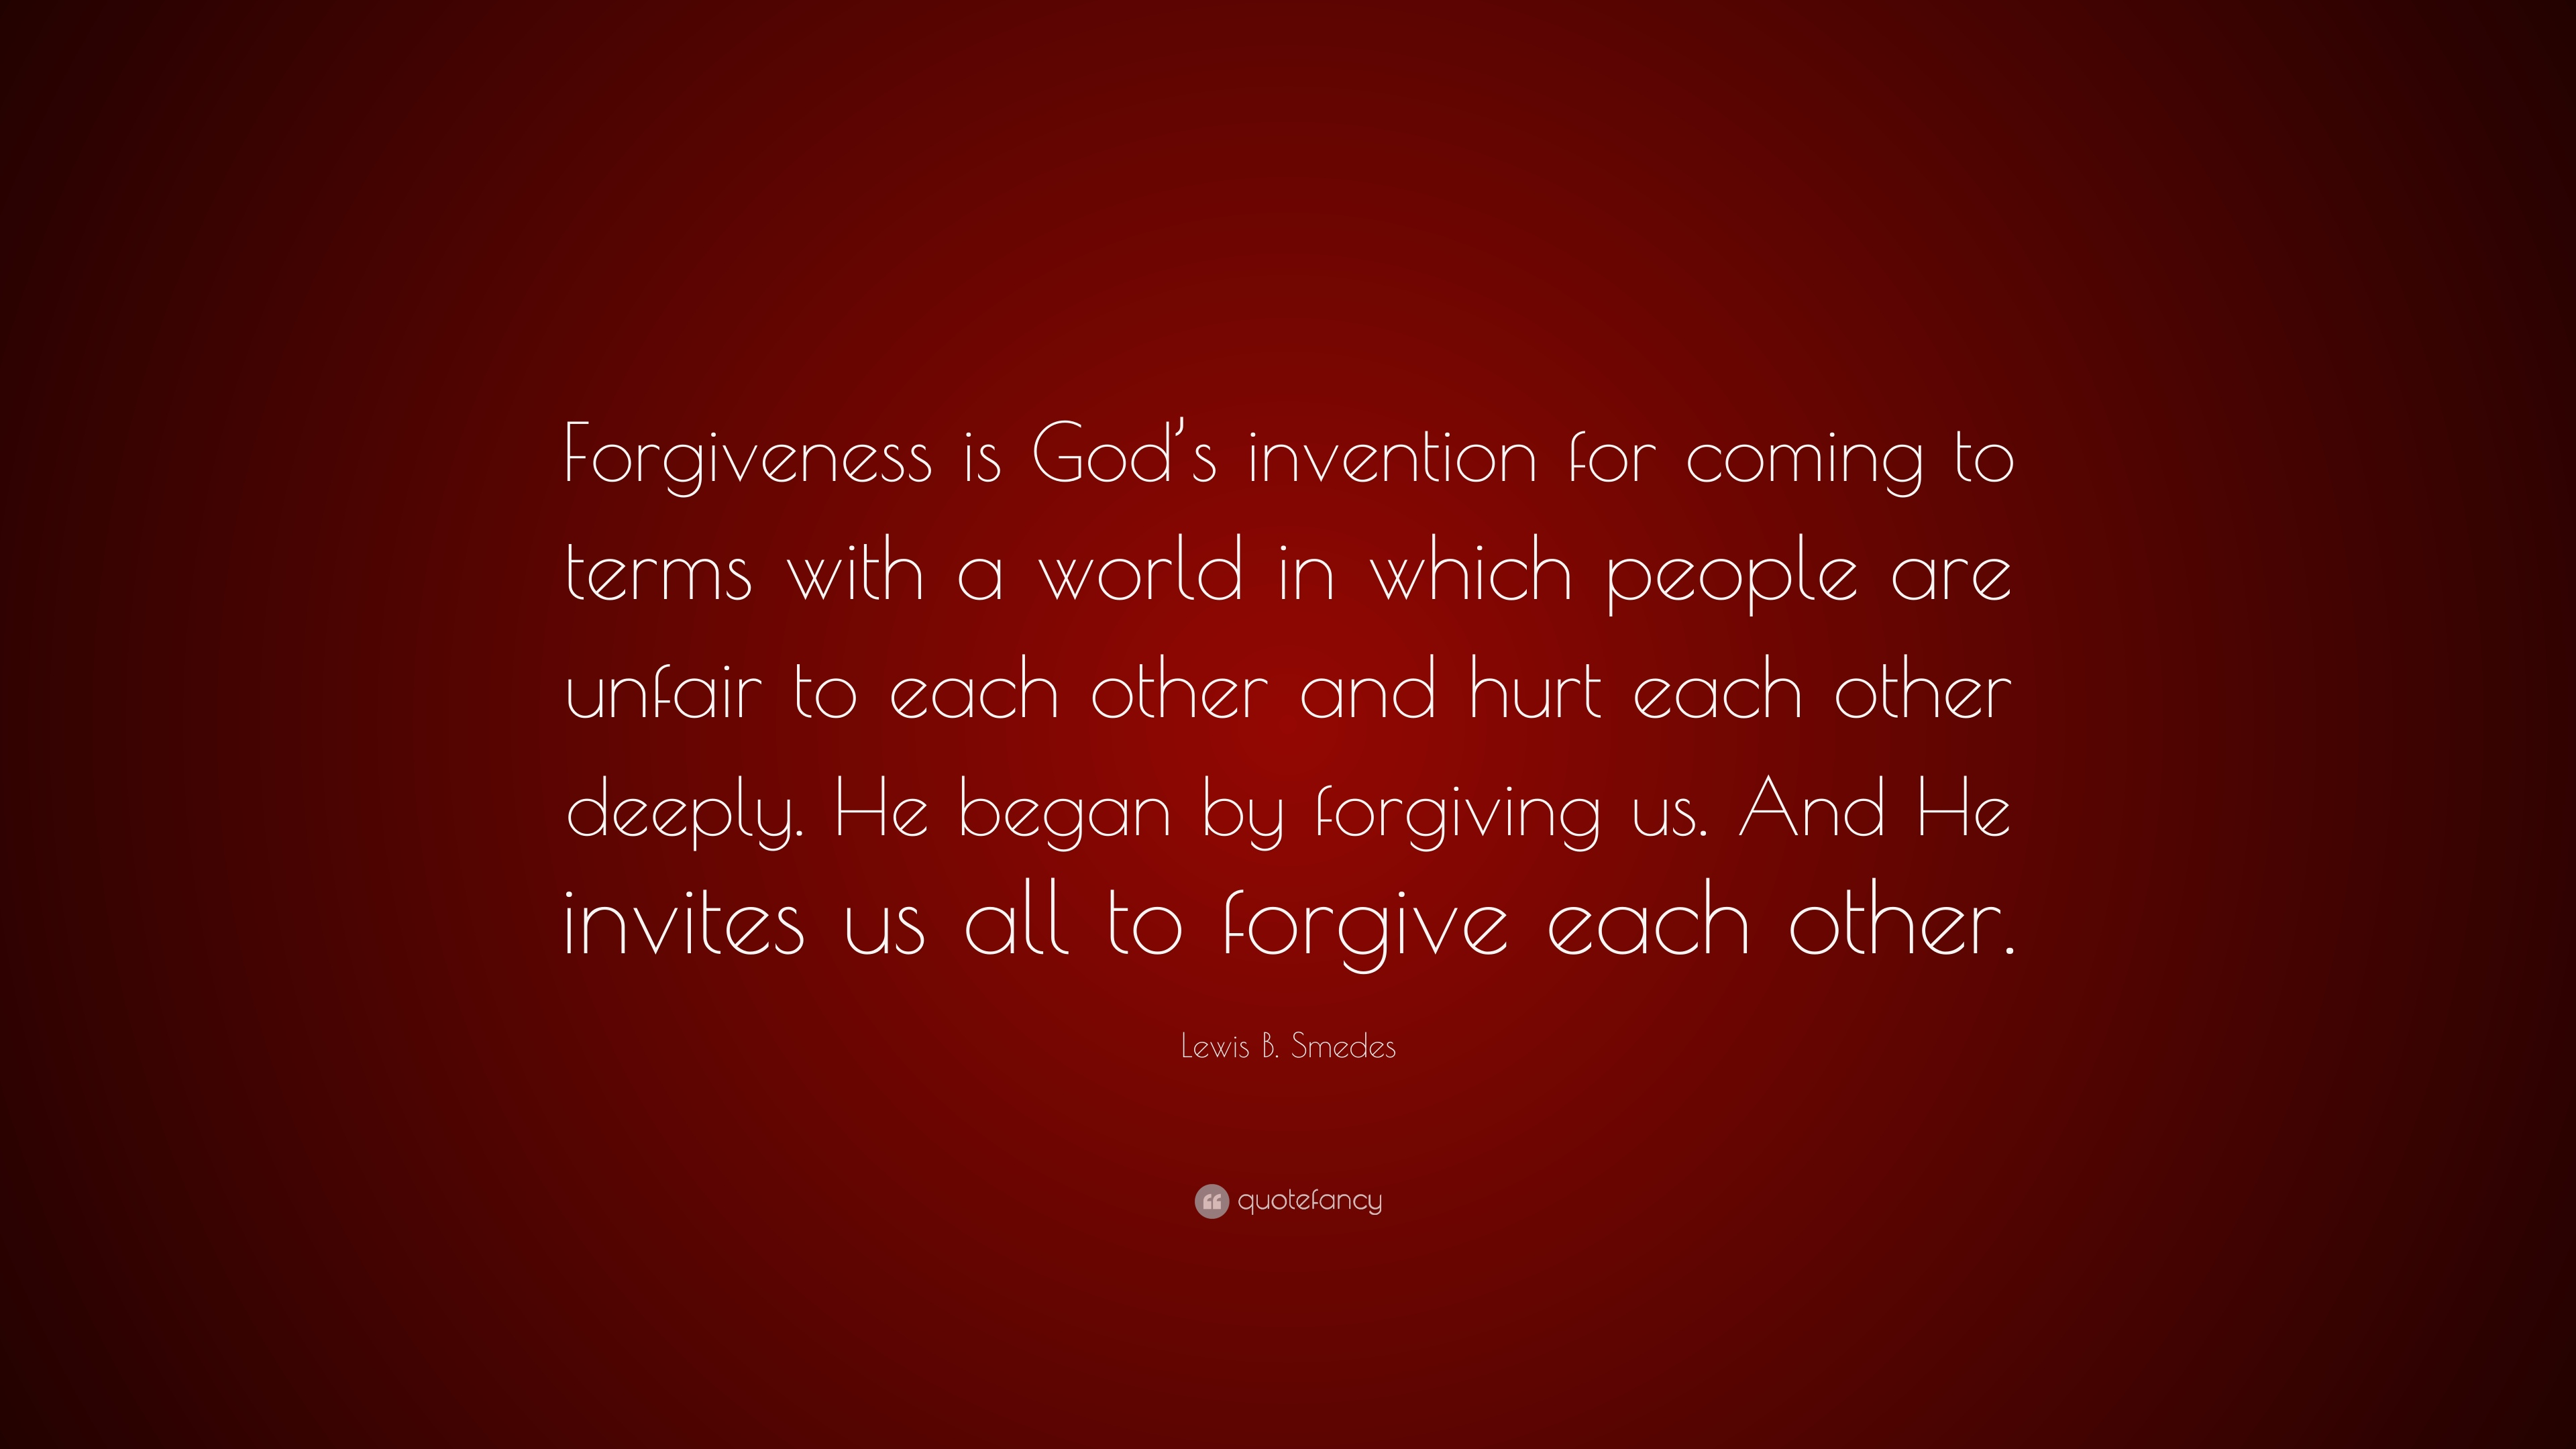 Forgiveness-is-God-s-invention-for-coming-to